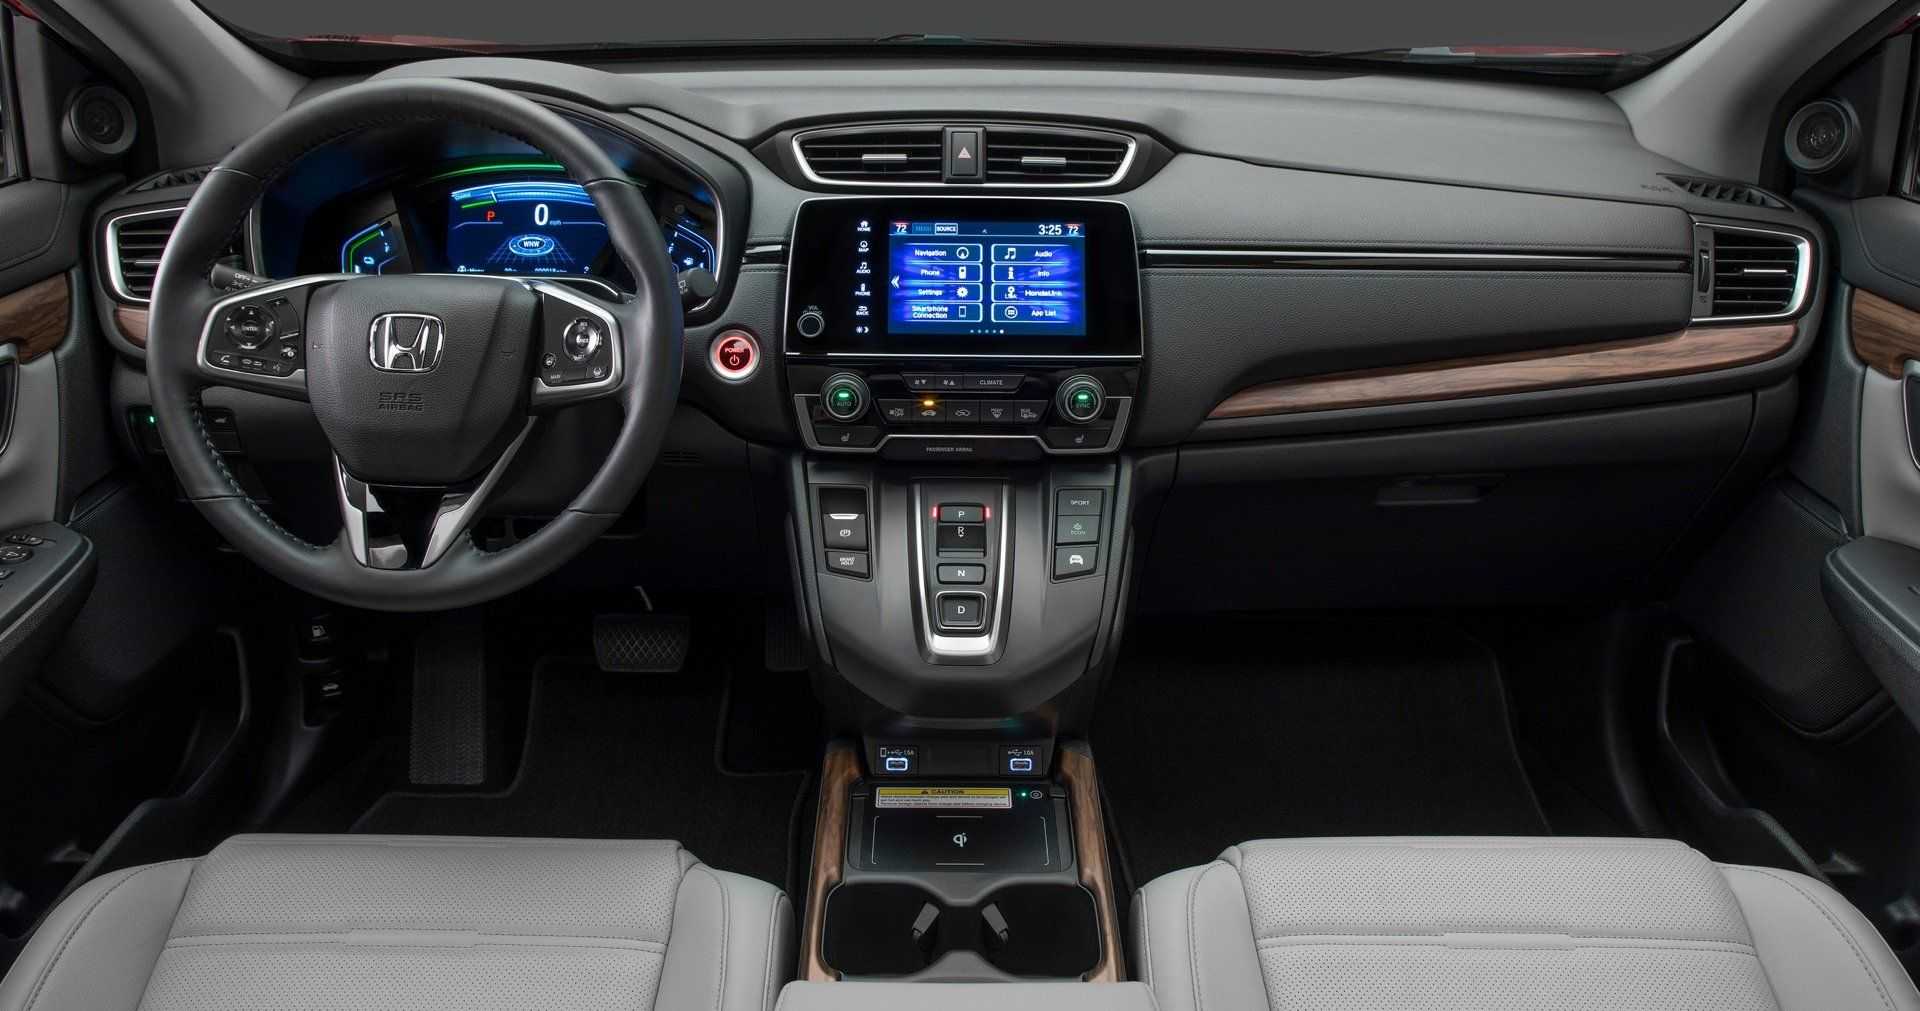 All New 2020 Honda Cr V Hybrid Features The Accord Hybrid Powertrain And Fresh Face Honda Crv Interior Honda Crv Hybrid Honda Crv